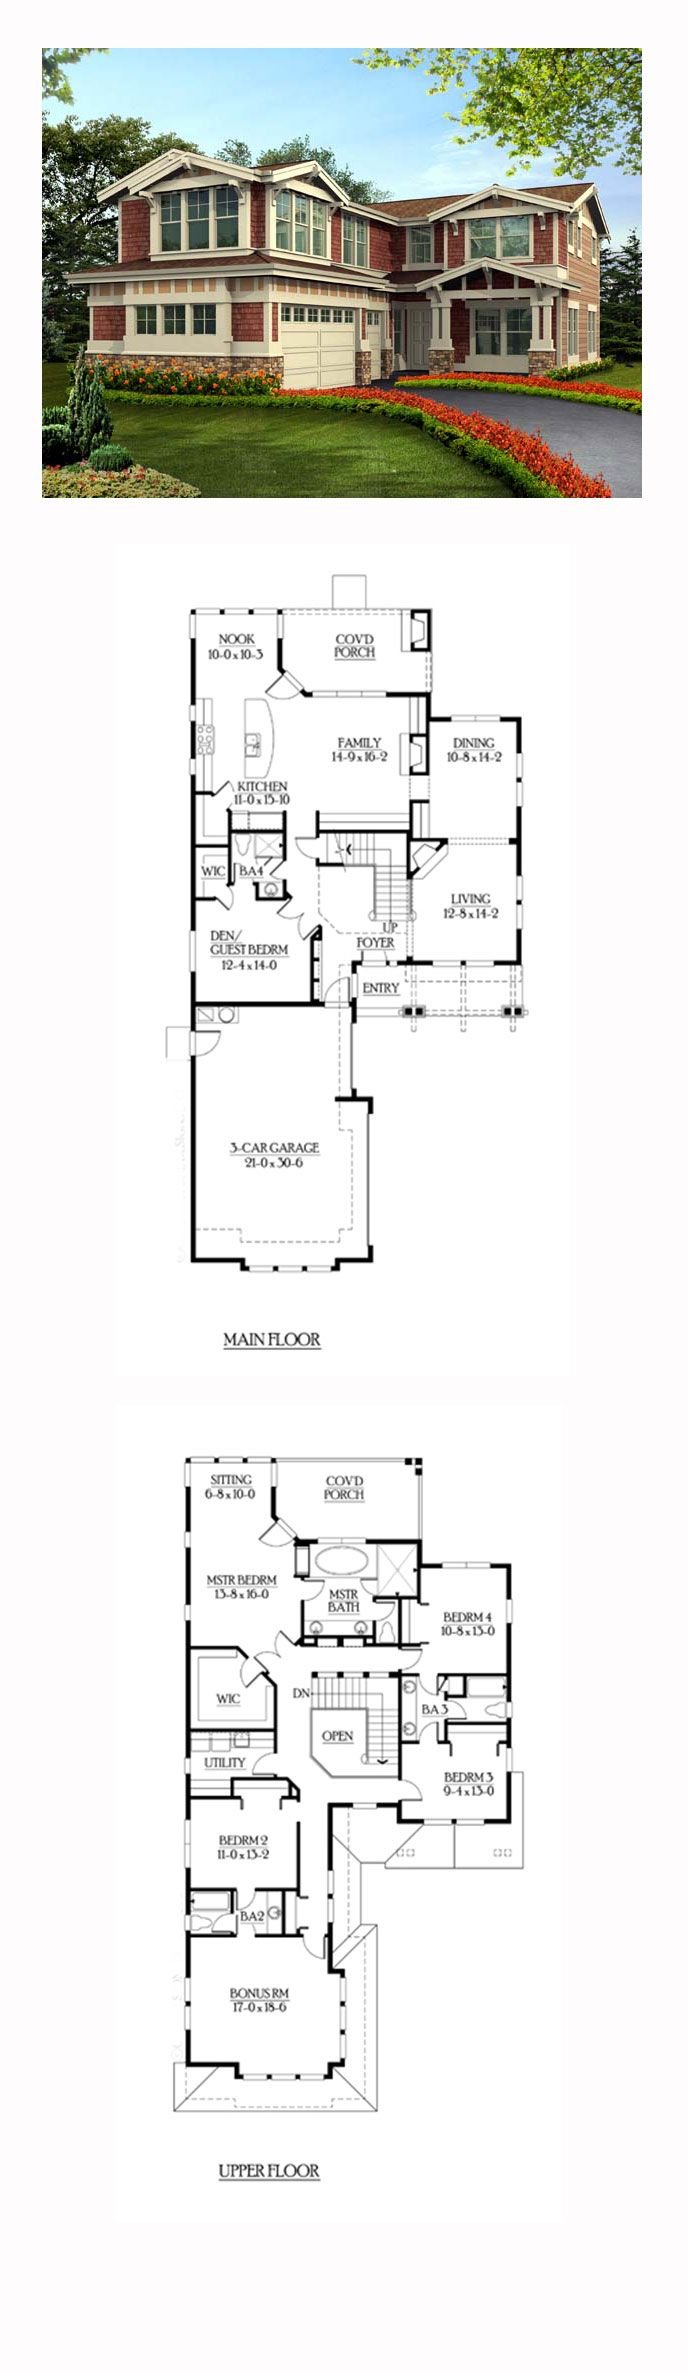 25 best cool house plans ideas on pinterest house layout plans shingle style cool house plan id chp 39816 total living area 3416